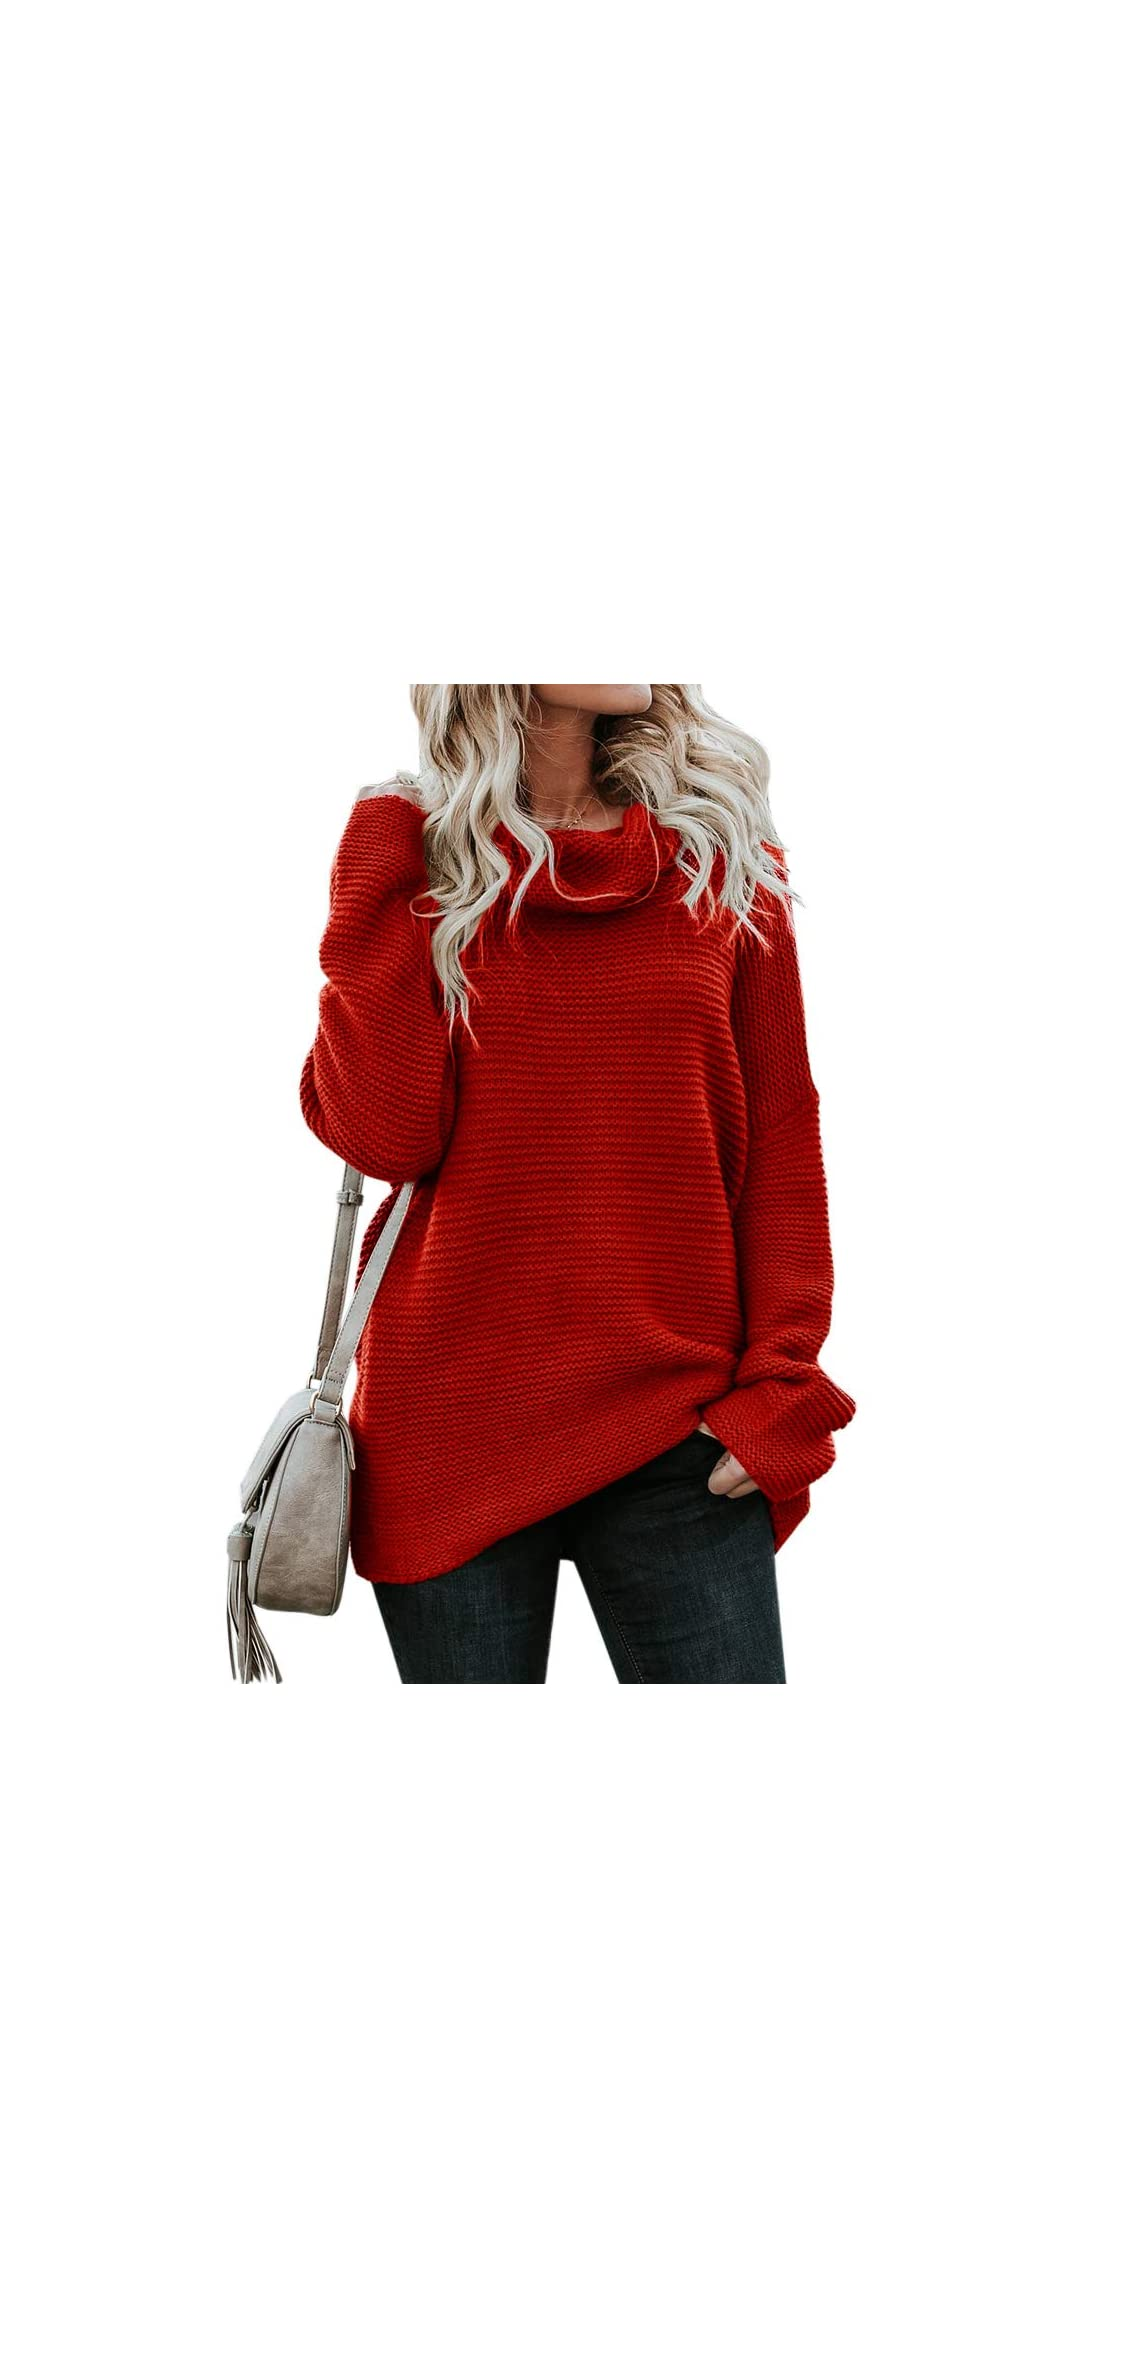 Womens Cowl Neck Sweaters Oversized Casual Fall Chunky